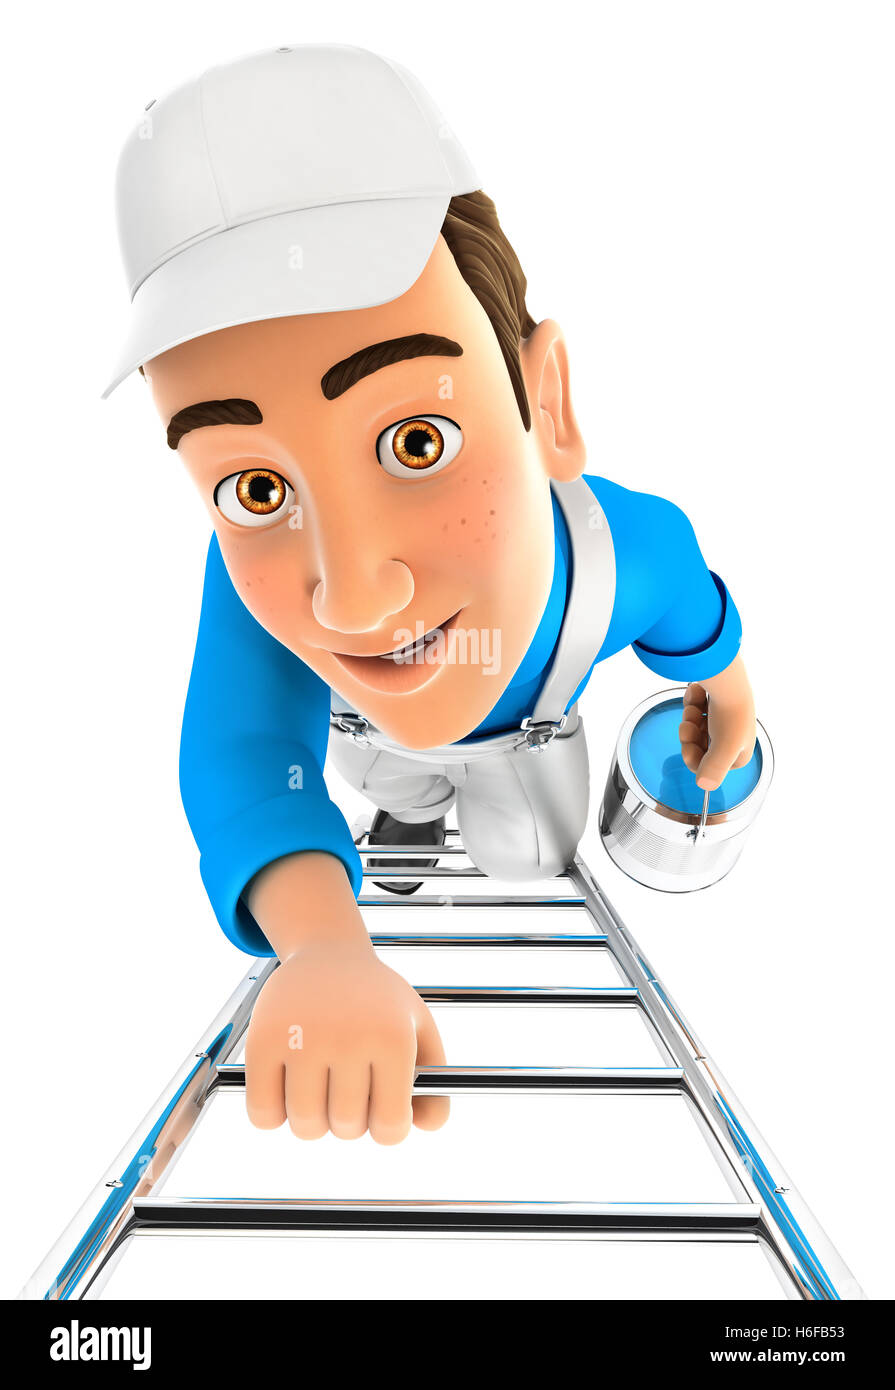 d painter climbing up the ladder illustration isolated 3d painter climbing up the ladder illustration isolated white background